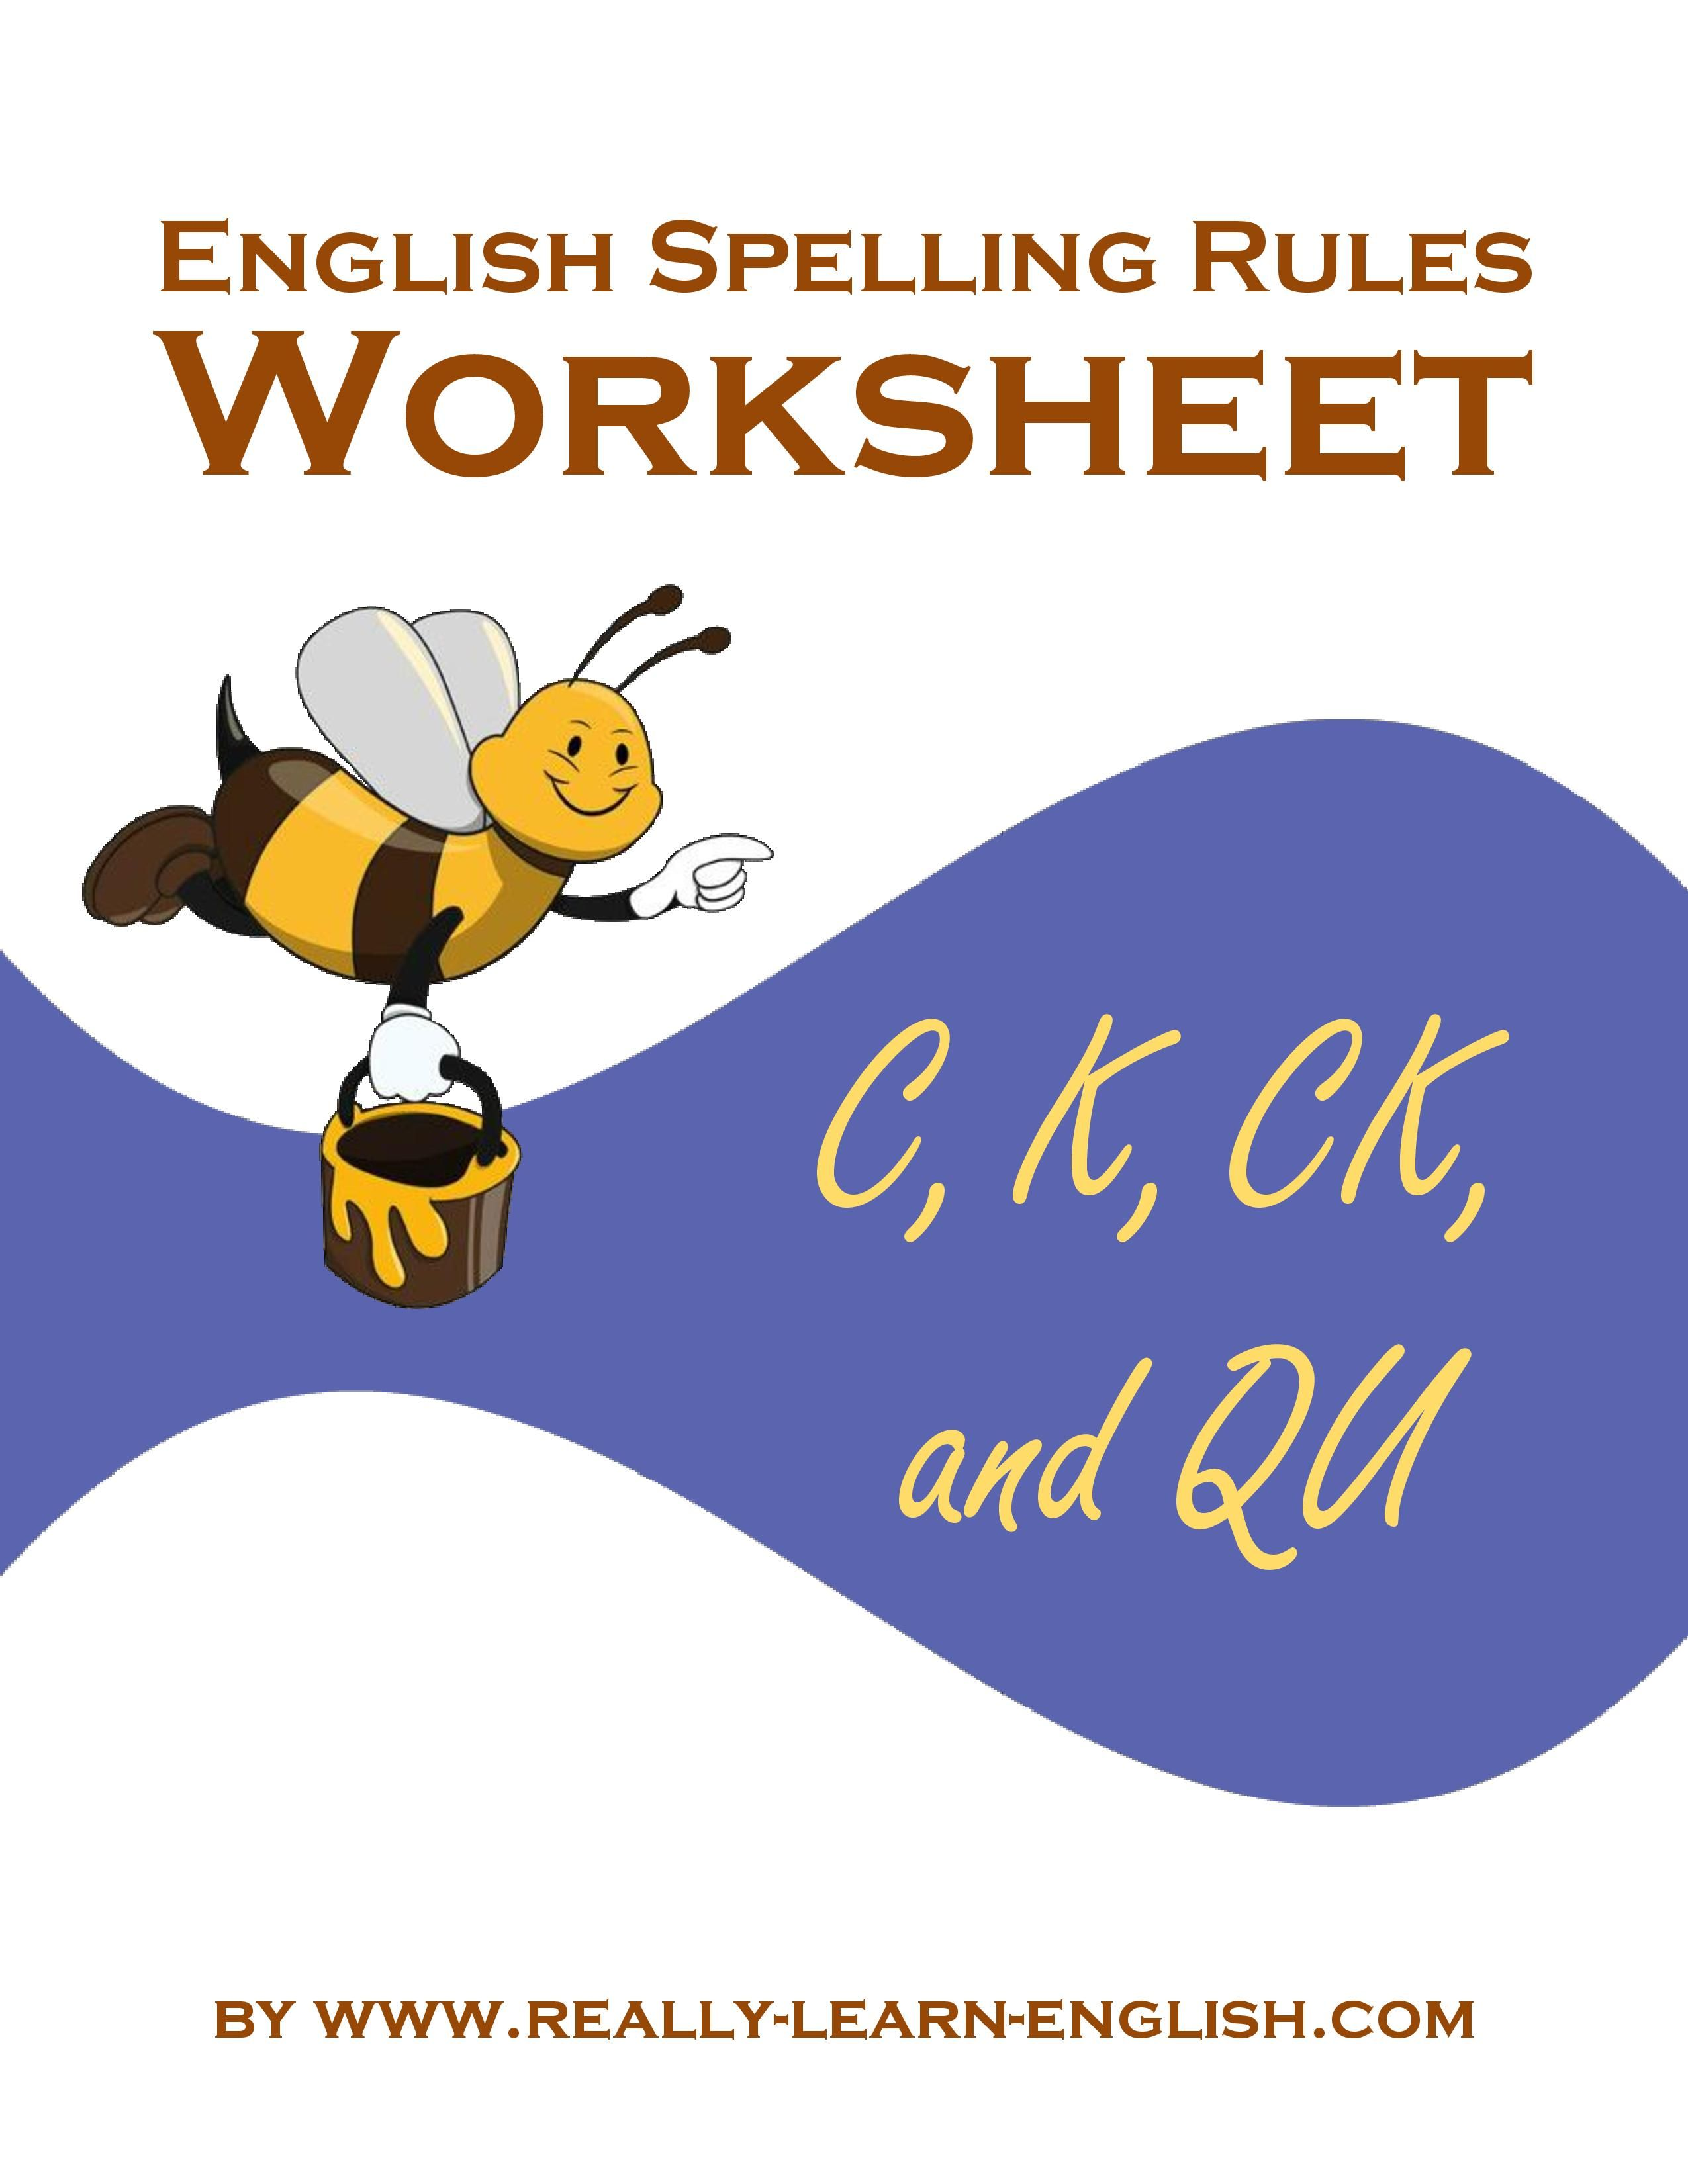 English Spelling Rules And Printable Worksheets For The K Sounds C K Ck And Qu